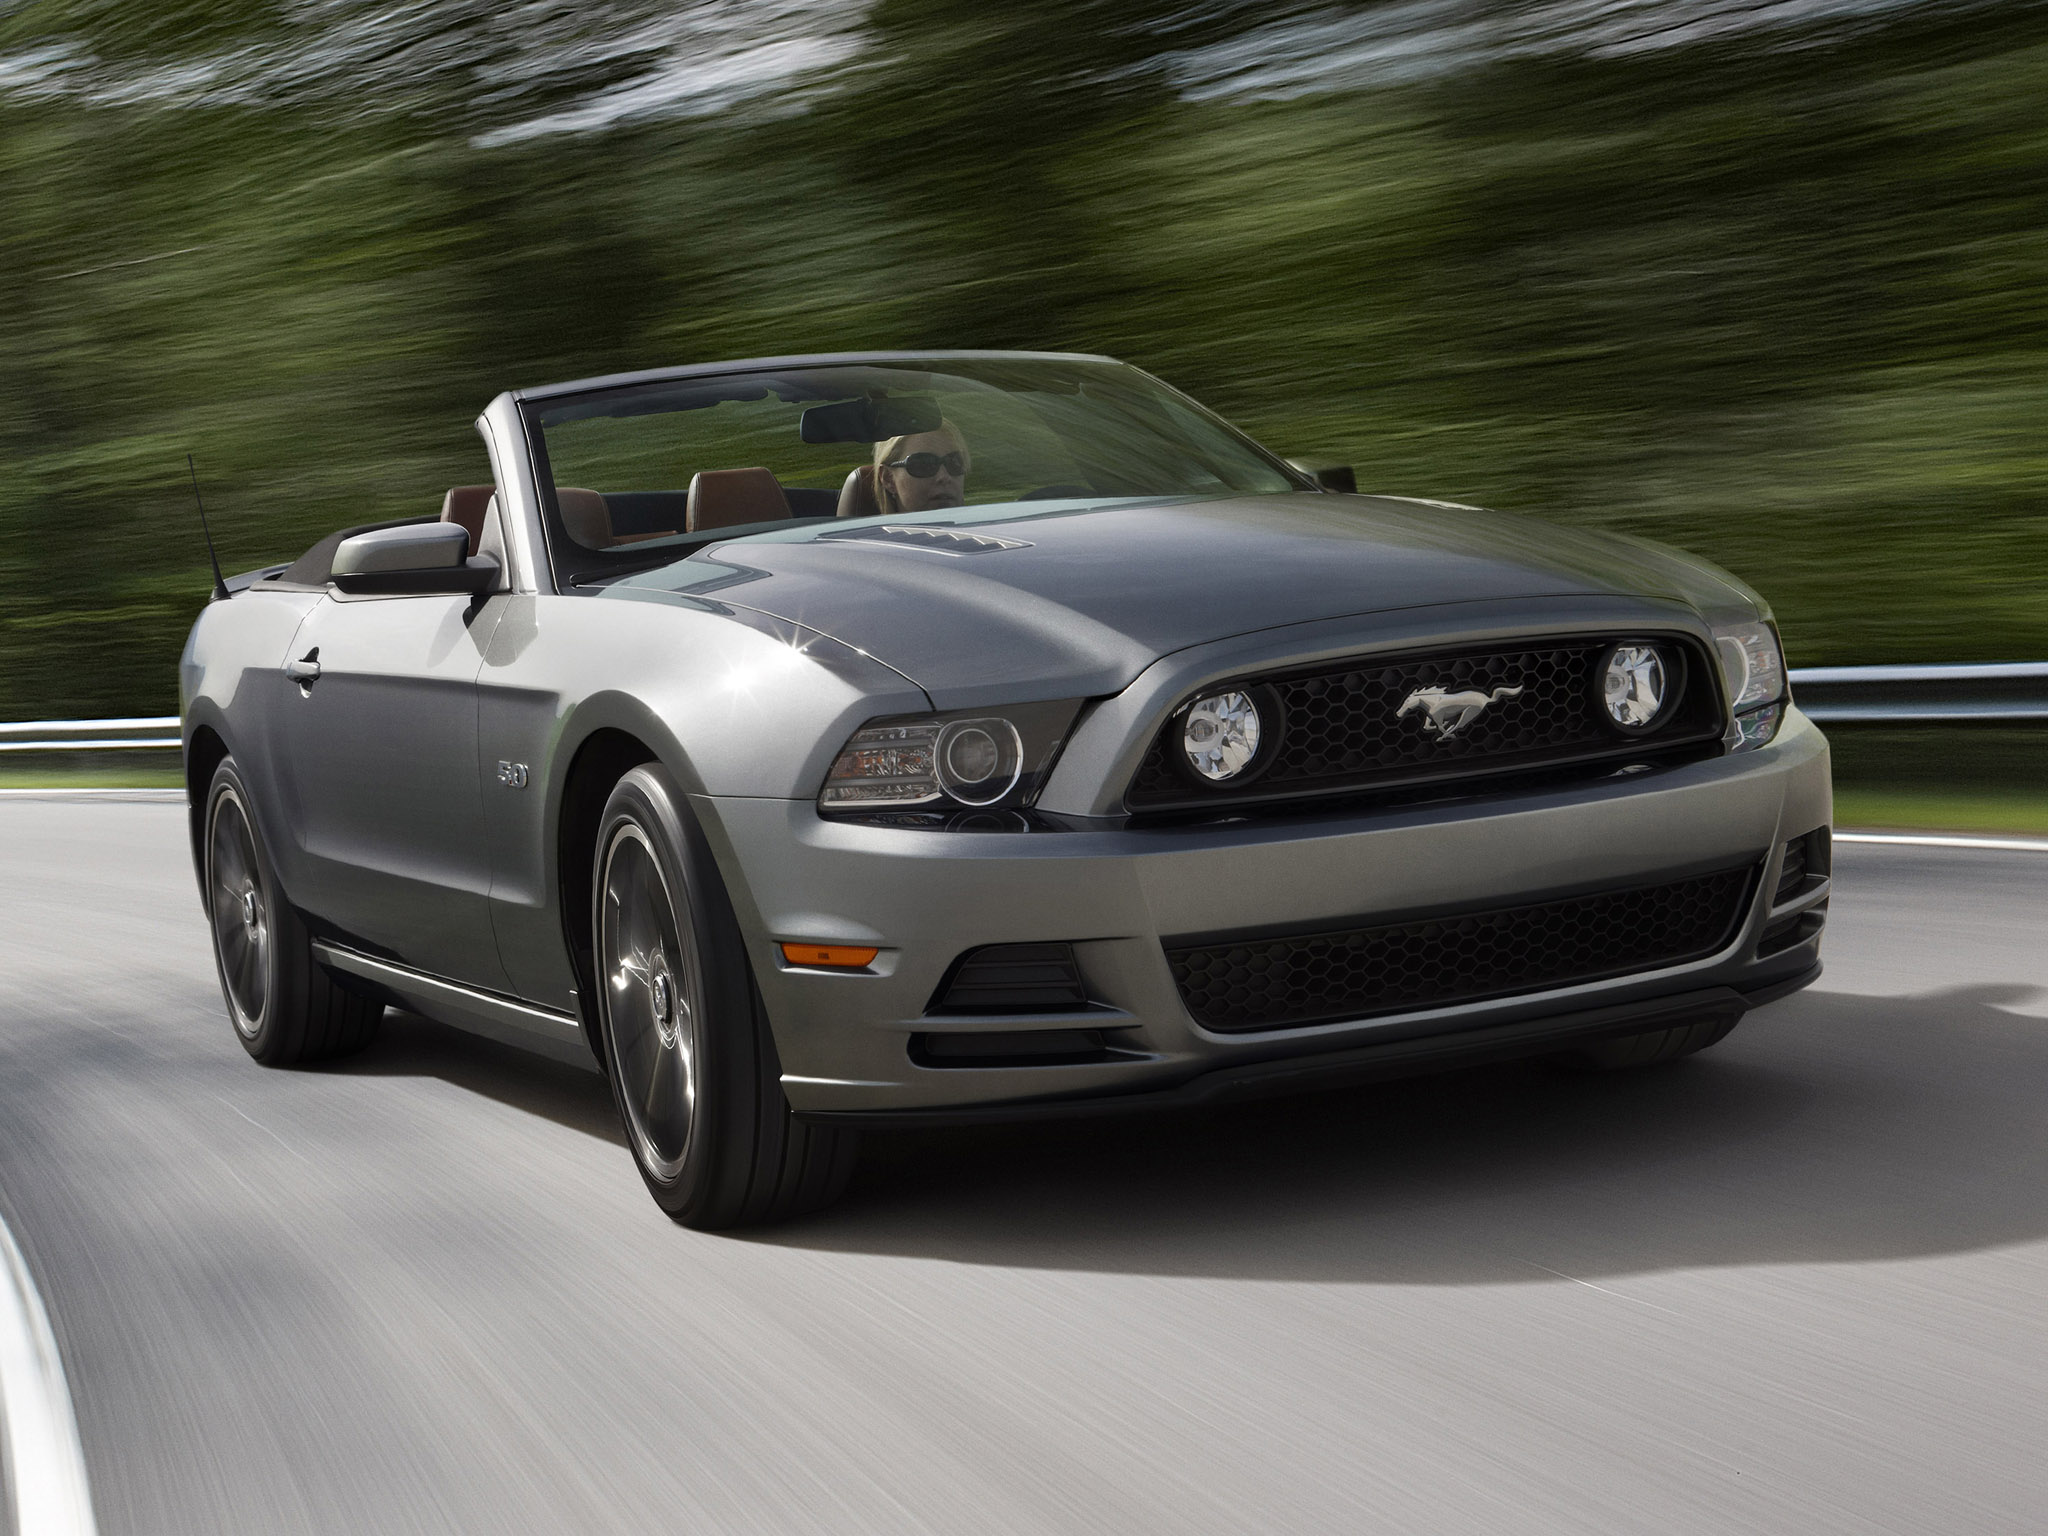 ford mustang 5 0 gt convertible 2012 ford mustang 5 0 gt convertible 2012 photo 04 car in. Black Bedroom Furniture Sets. Home Design Ideas